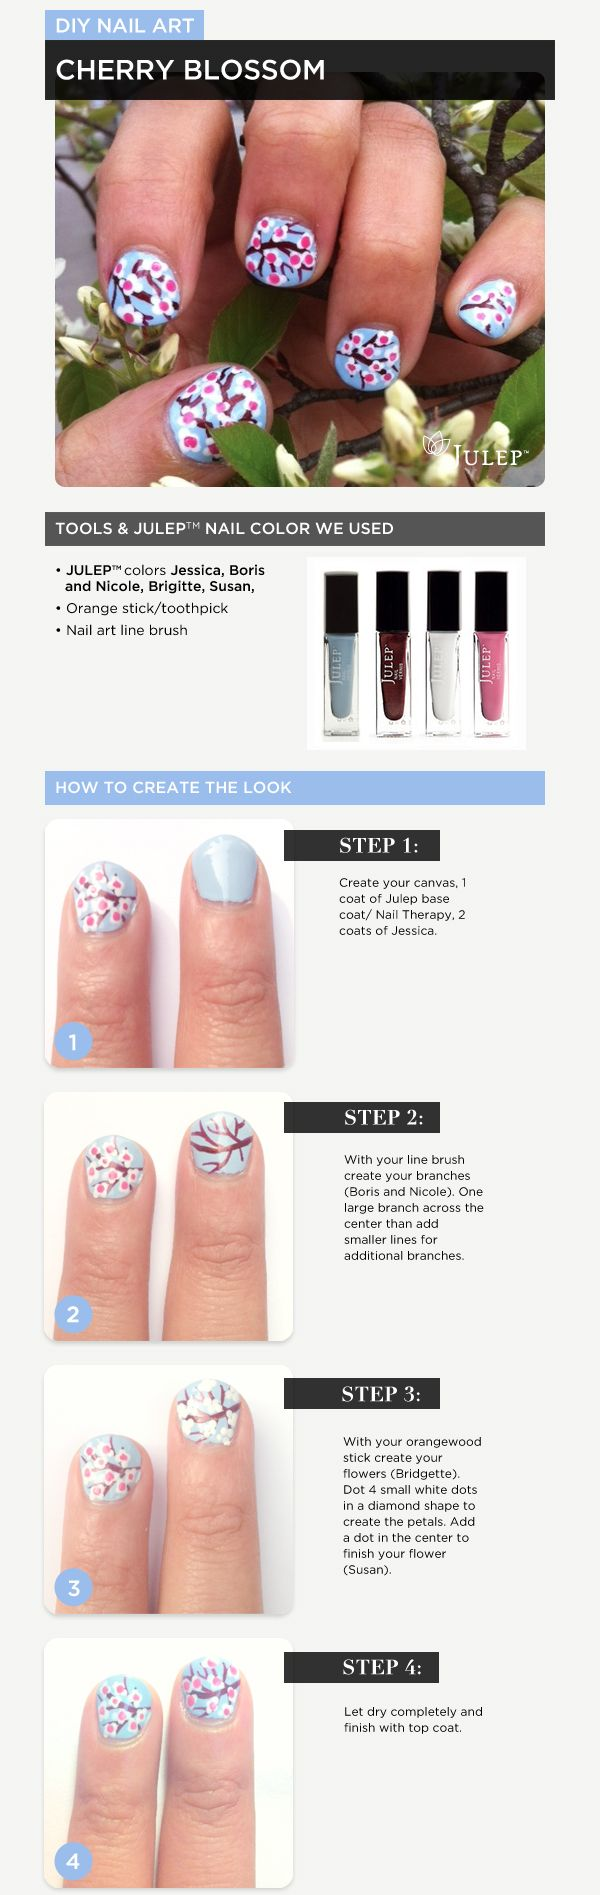 138 best Nail art~ images on Pinterest | Nail tips, Cute nails and ...